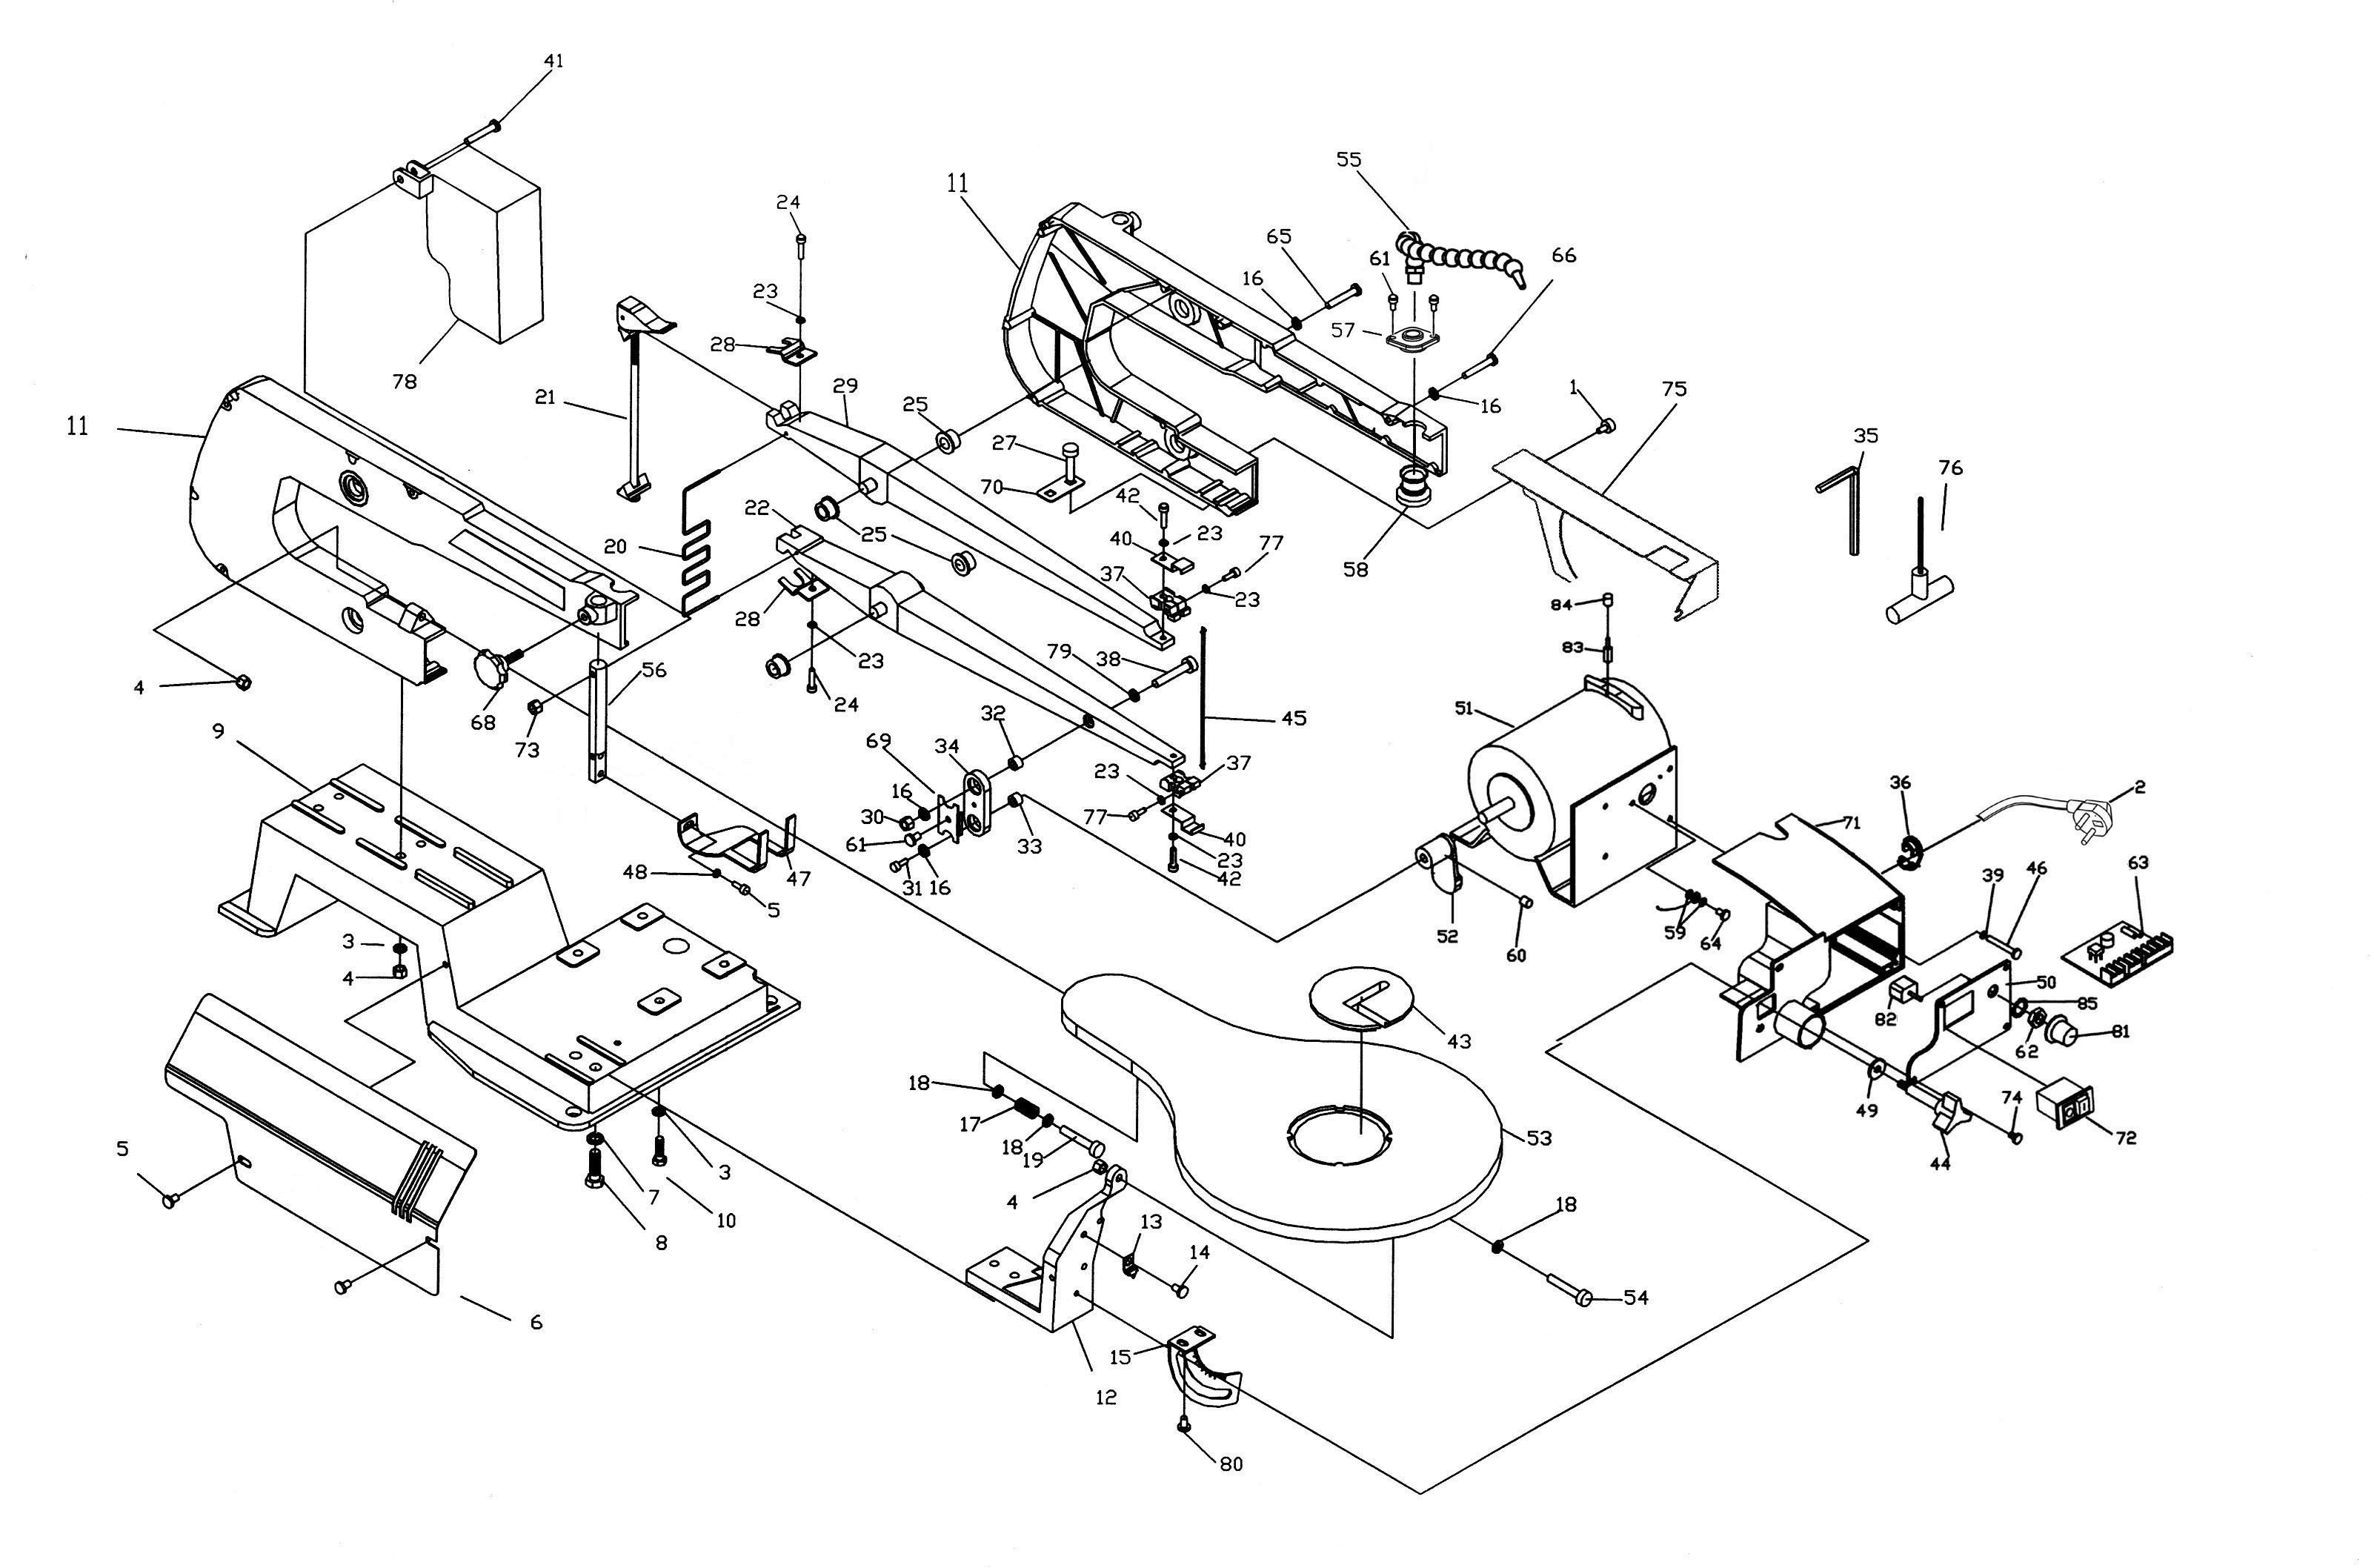 Sip 16 Scroll Saw Diagram